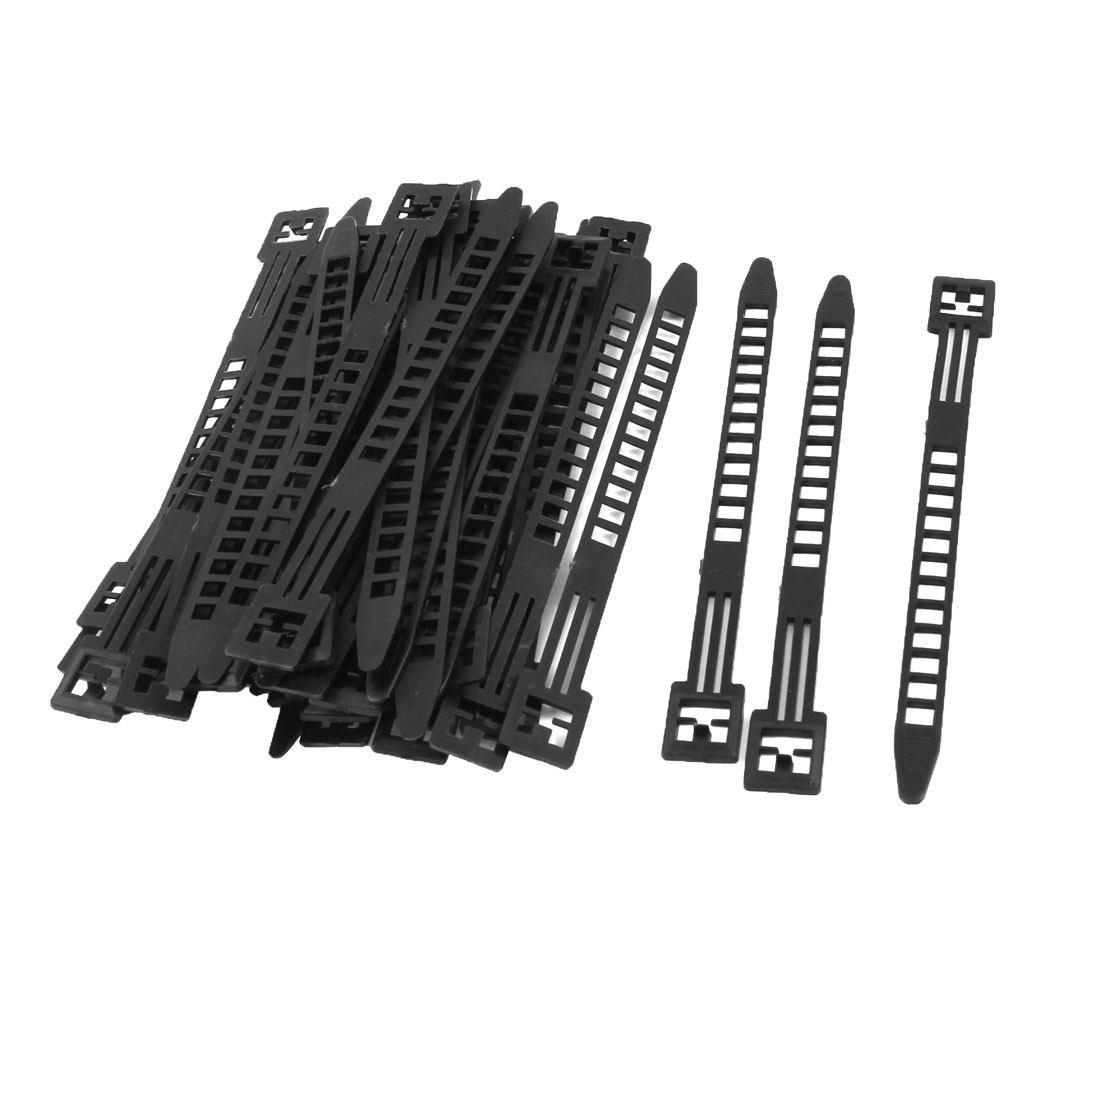 14cm Long Black Packaging Self-locking Adjustable Nylon Cable Ties 50 Pcs